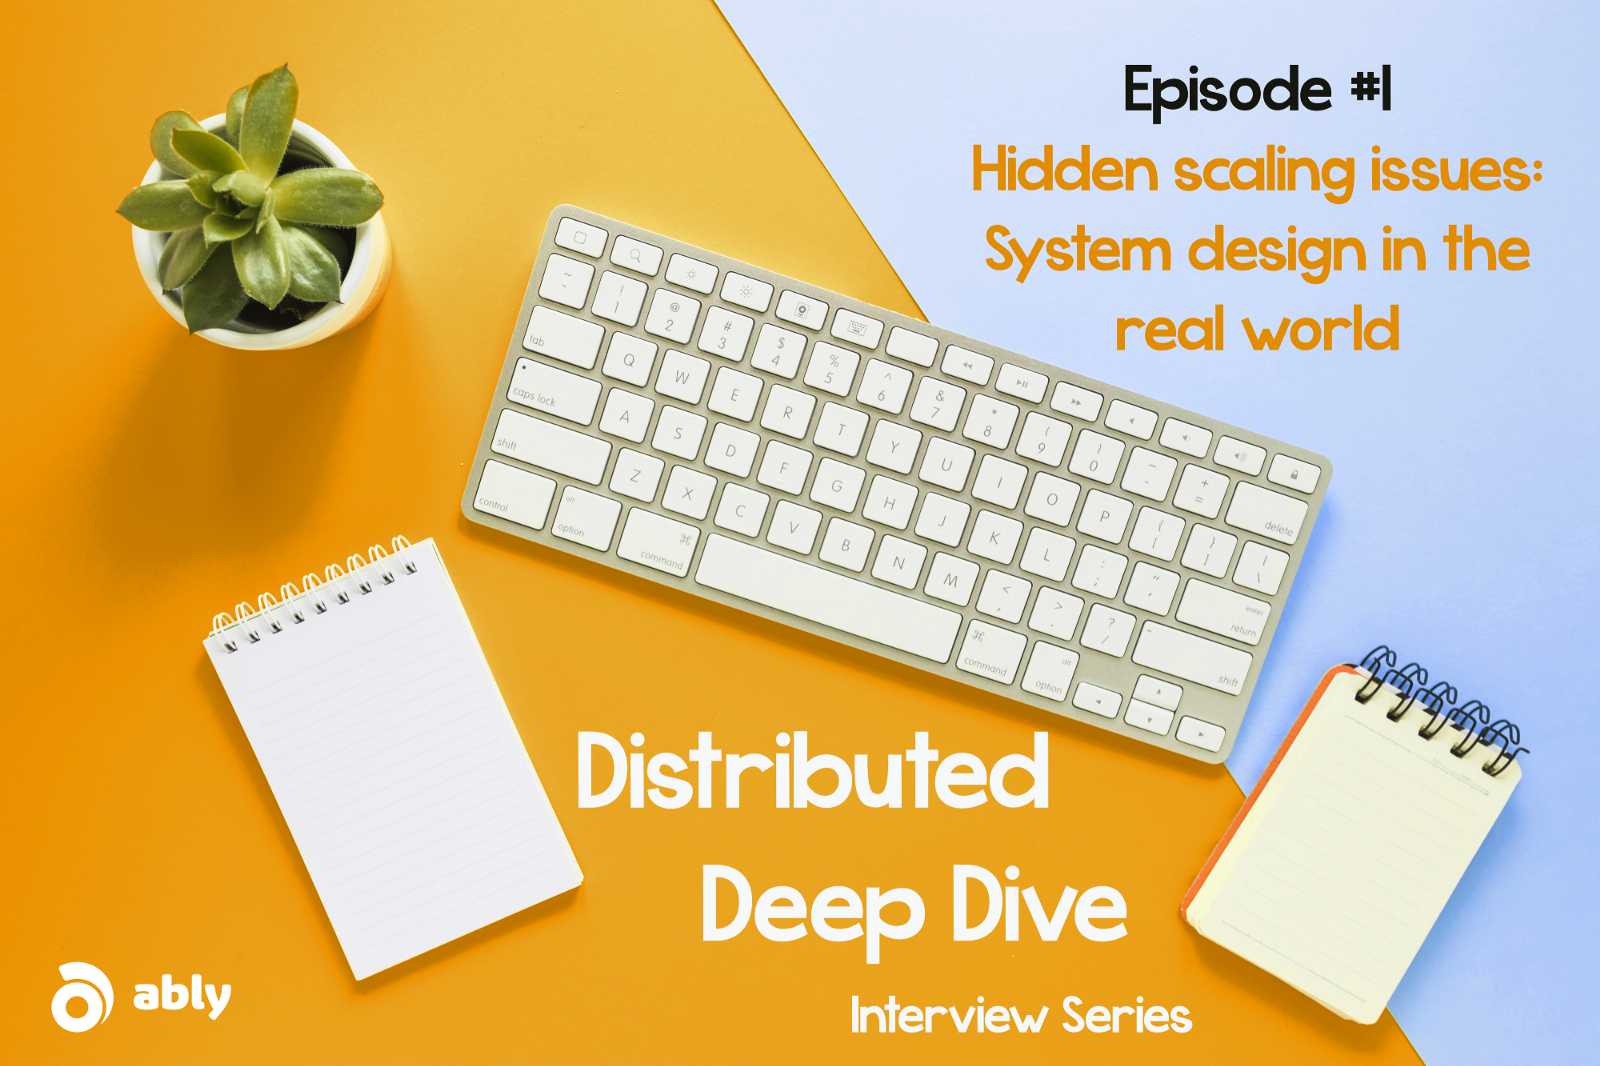 Hidden scaling issues of distributed systems - System design in the real world